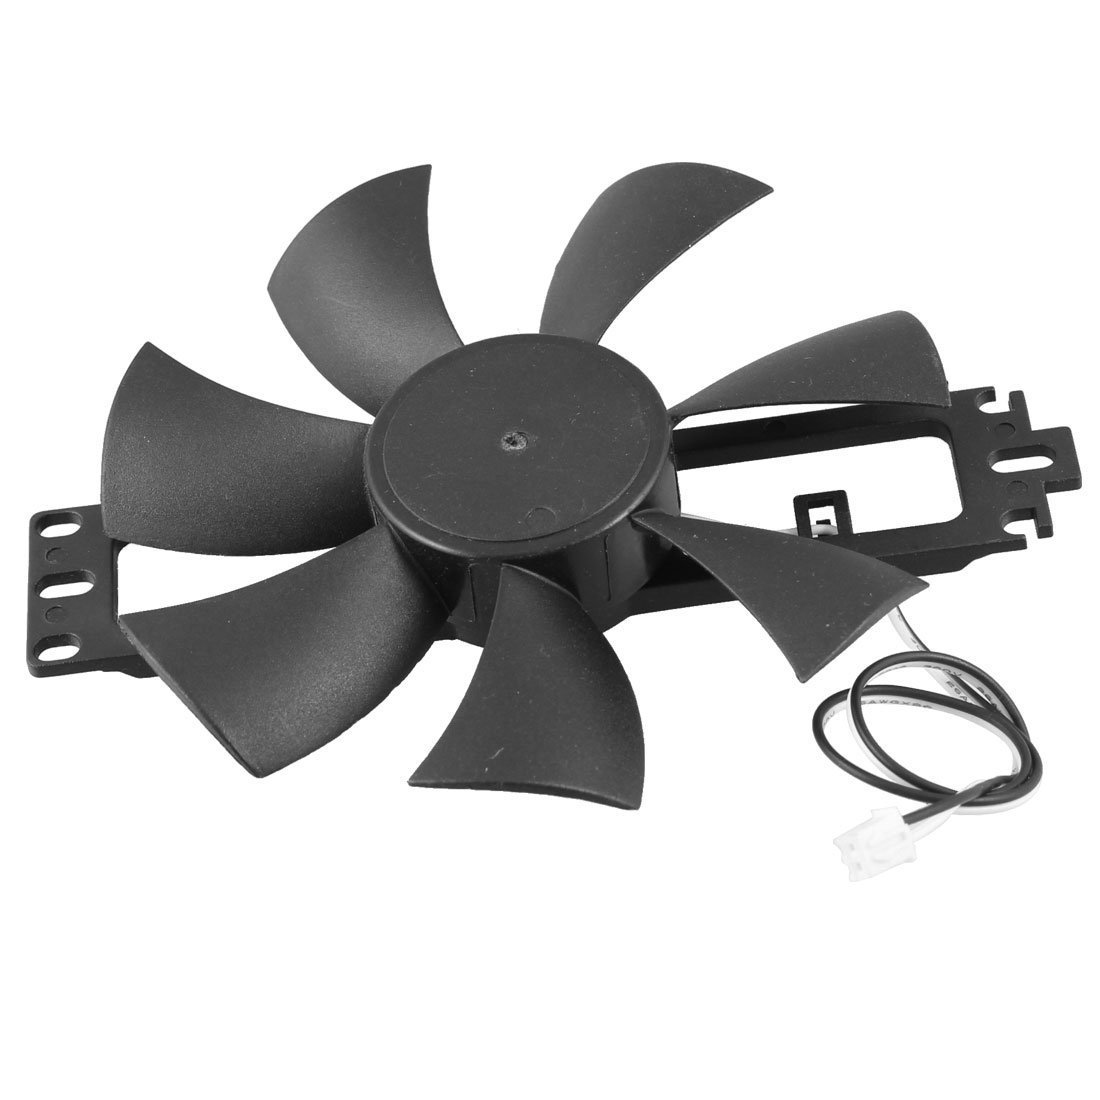 DC 18V Plastic Brushless Fan Cooling Fan For Induction Cooker Repair Accessories Induction cooker parts maitech dc 12 v 0 1a cooling fan red silver